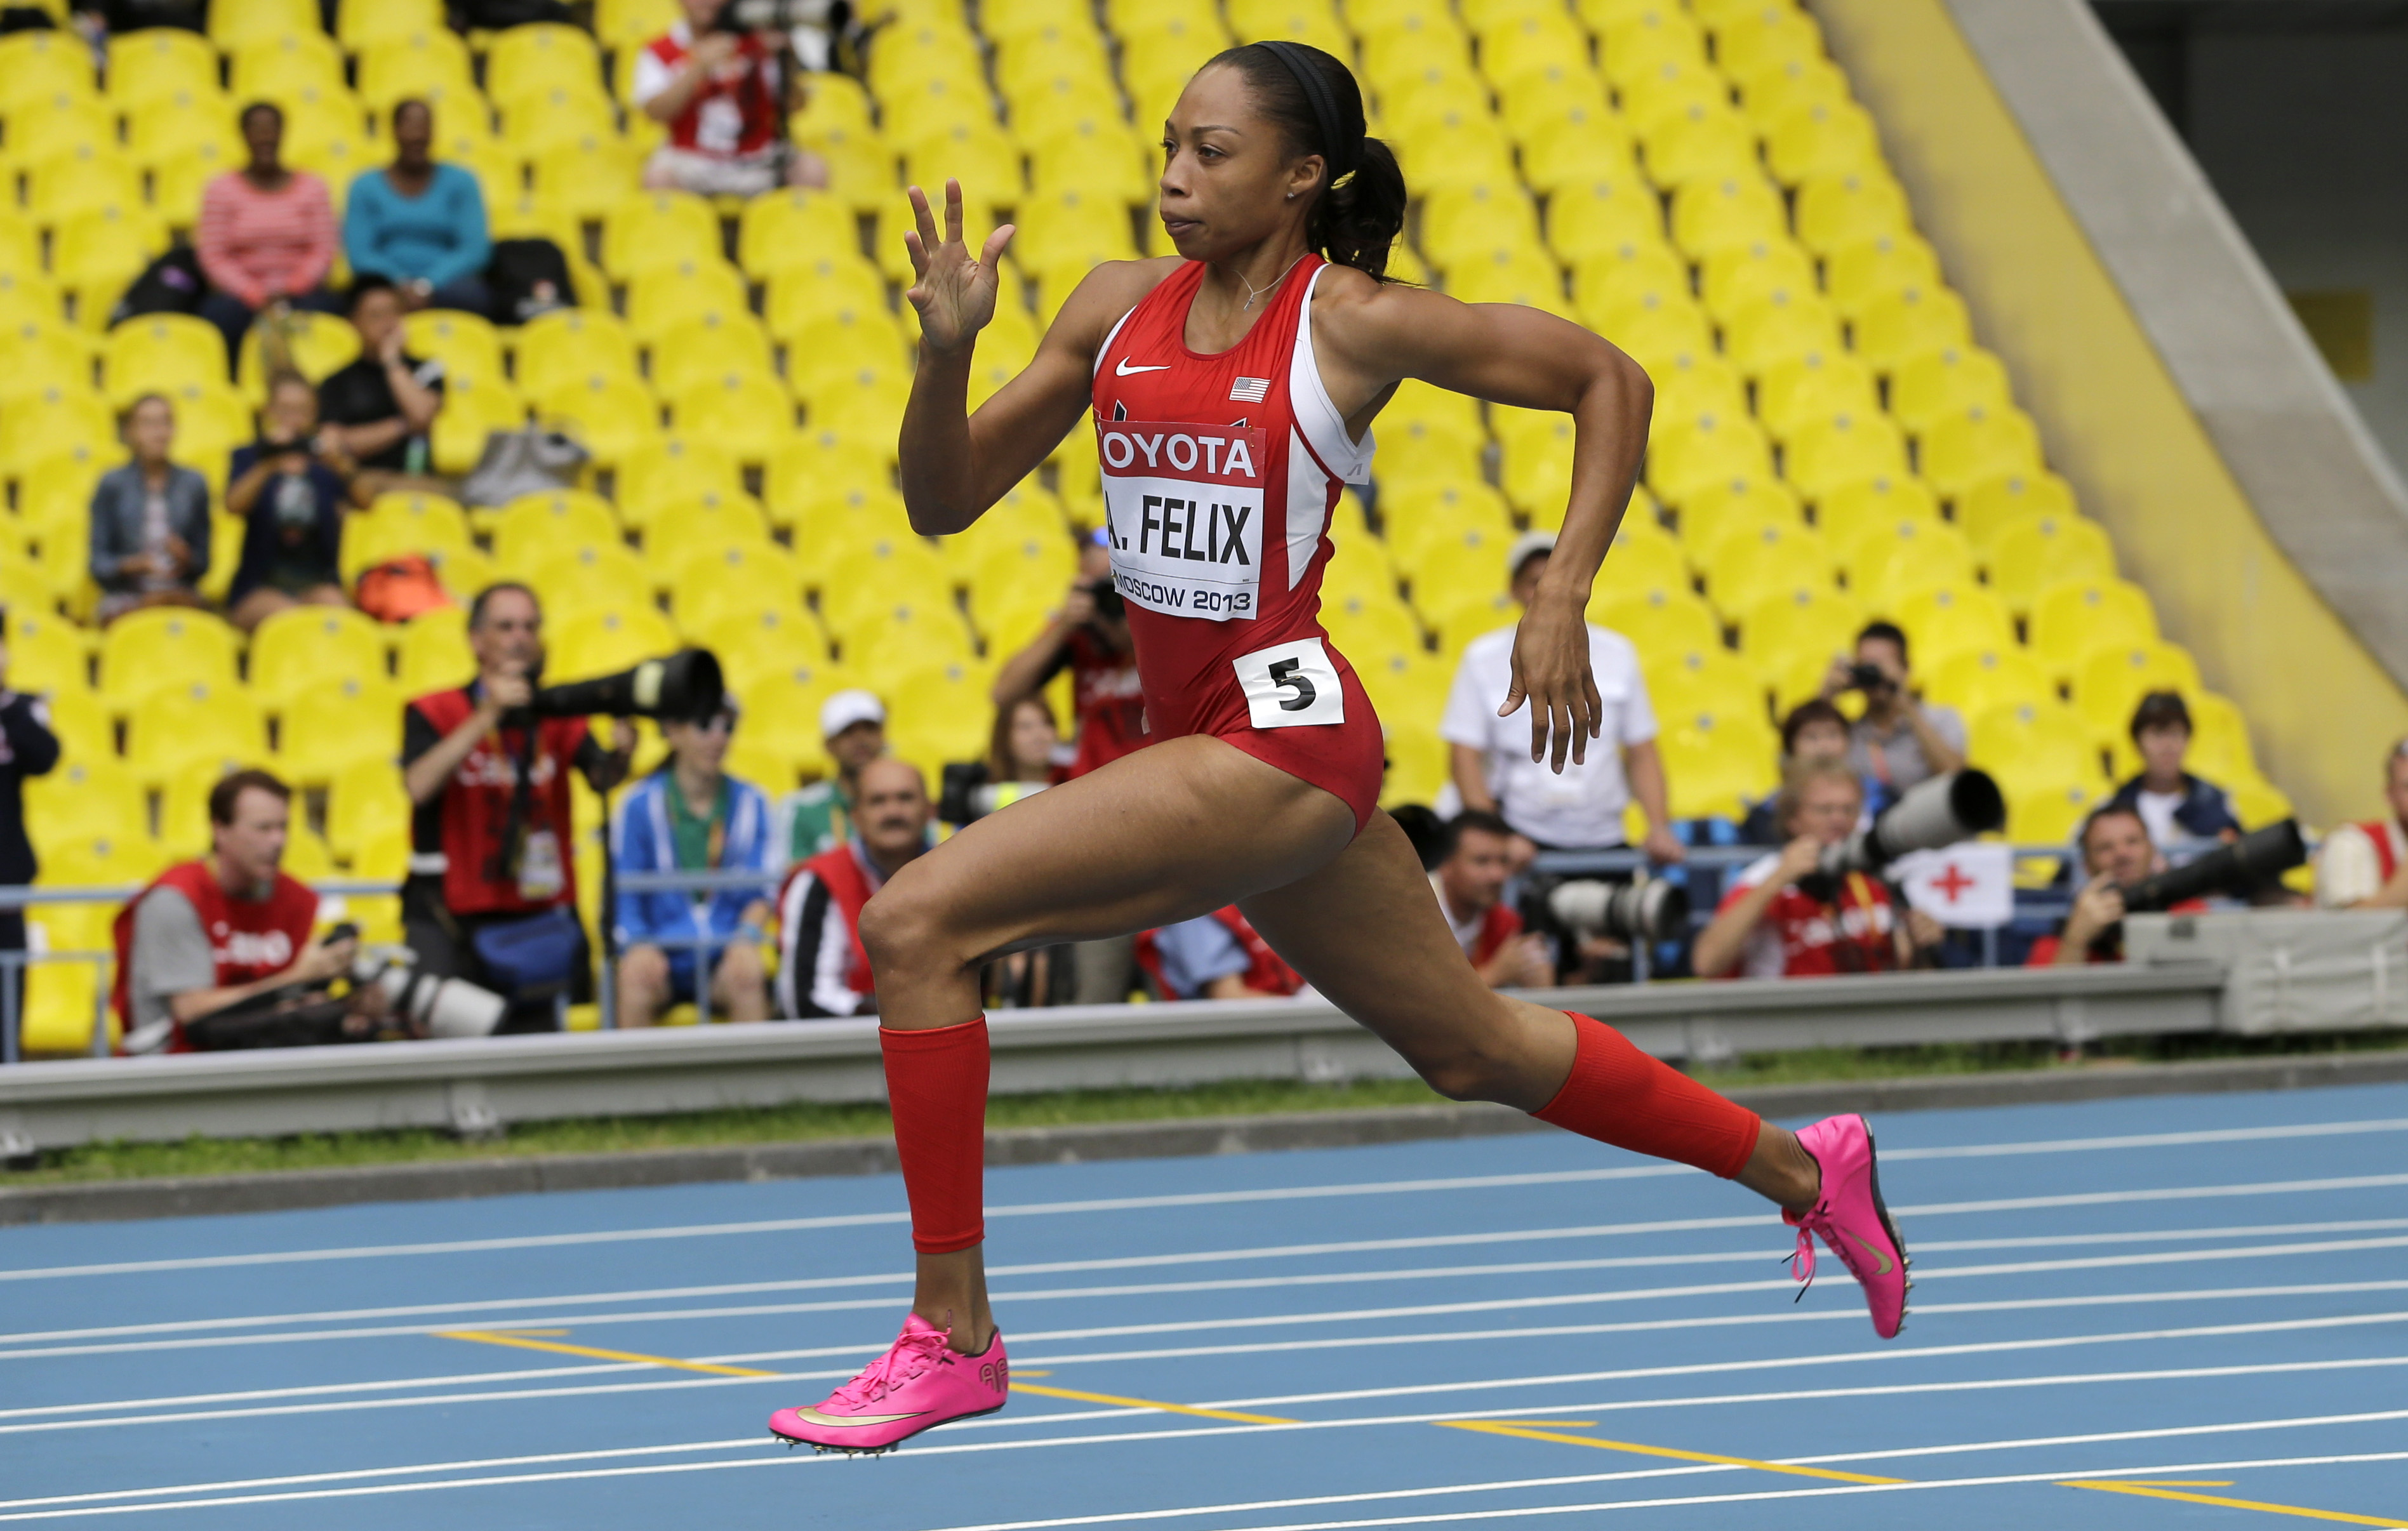 FILE - In this Aug. 15, 2013, file photo, United States' Allyson Felix competes in a women's 200-meter heat at the World Athletics Championships in Moscow. Felix's training is all geared toward the finish line in the 200 and 400 meters at the Rio Olympics